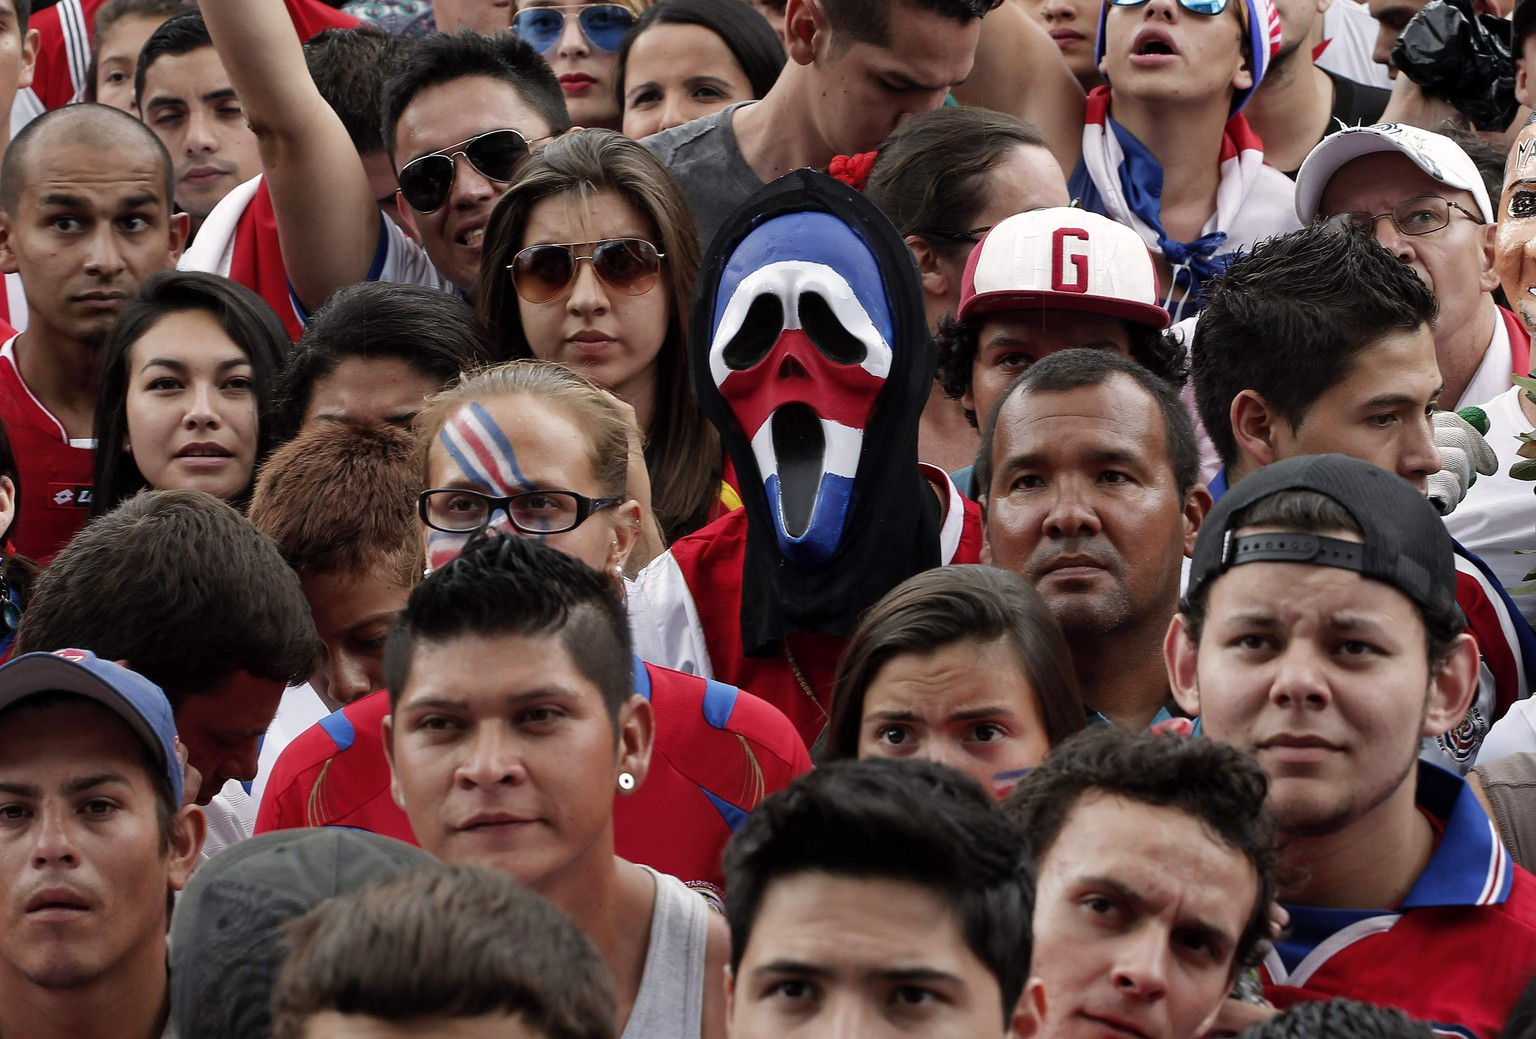 Fans of Costa Rica watch a broadcast of the 2014 World Cup round of 16 game between Costa Rica and Greece, in San Jose June 29, 2014. REUTERS/Juan Carlos Ulate (COSTA RICA - Tags: SPORT SOCCER WORLD CUP TPX IMAGES OF THE DAY)